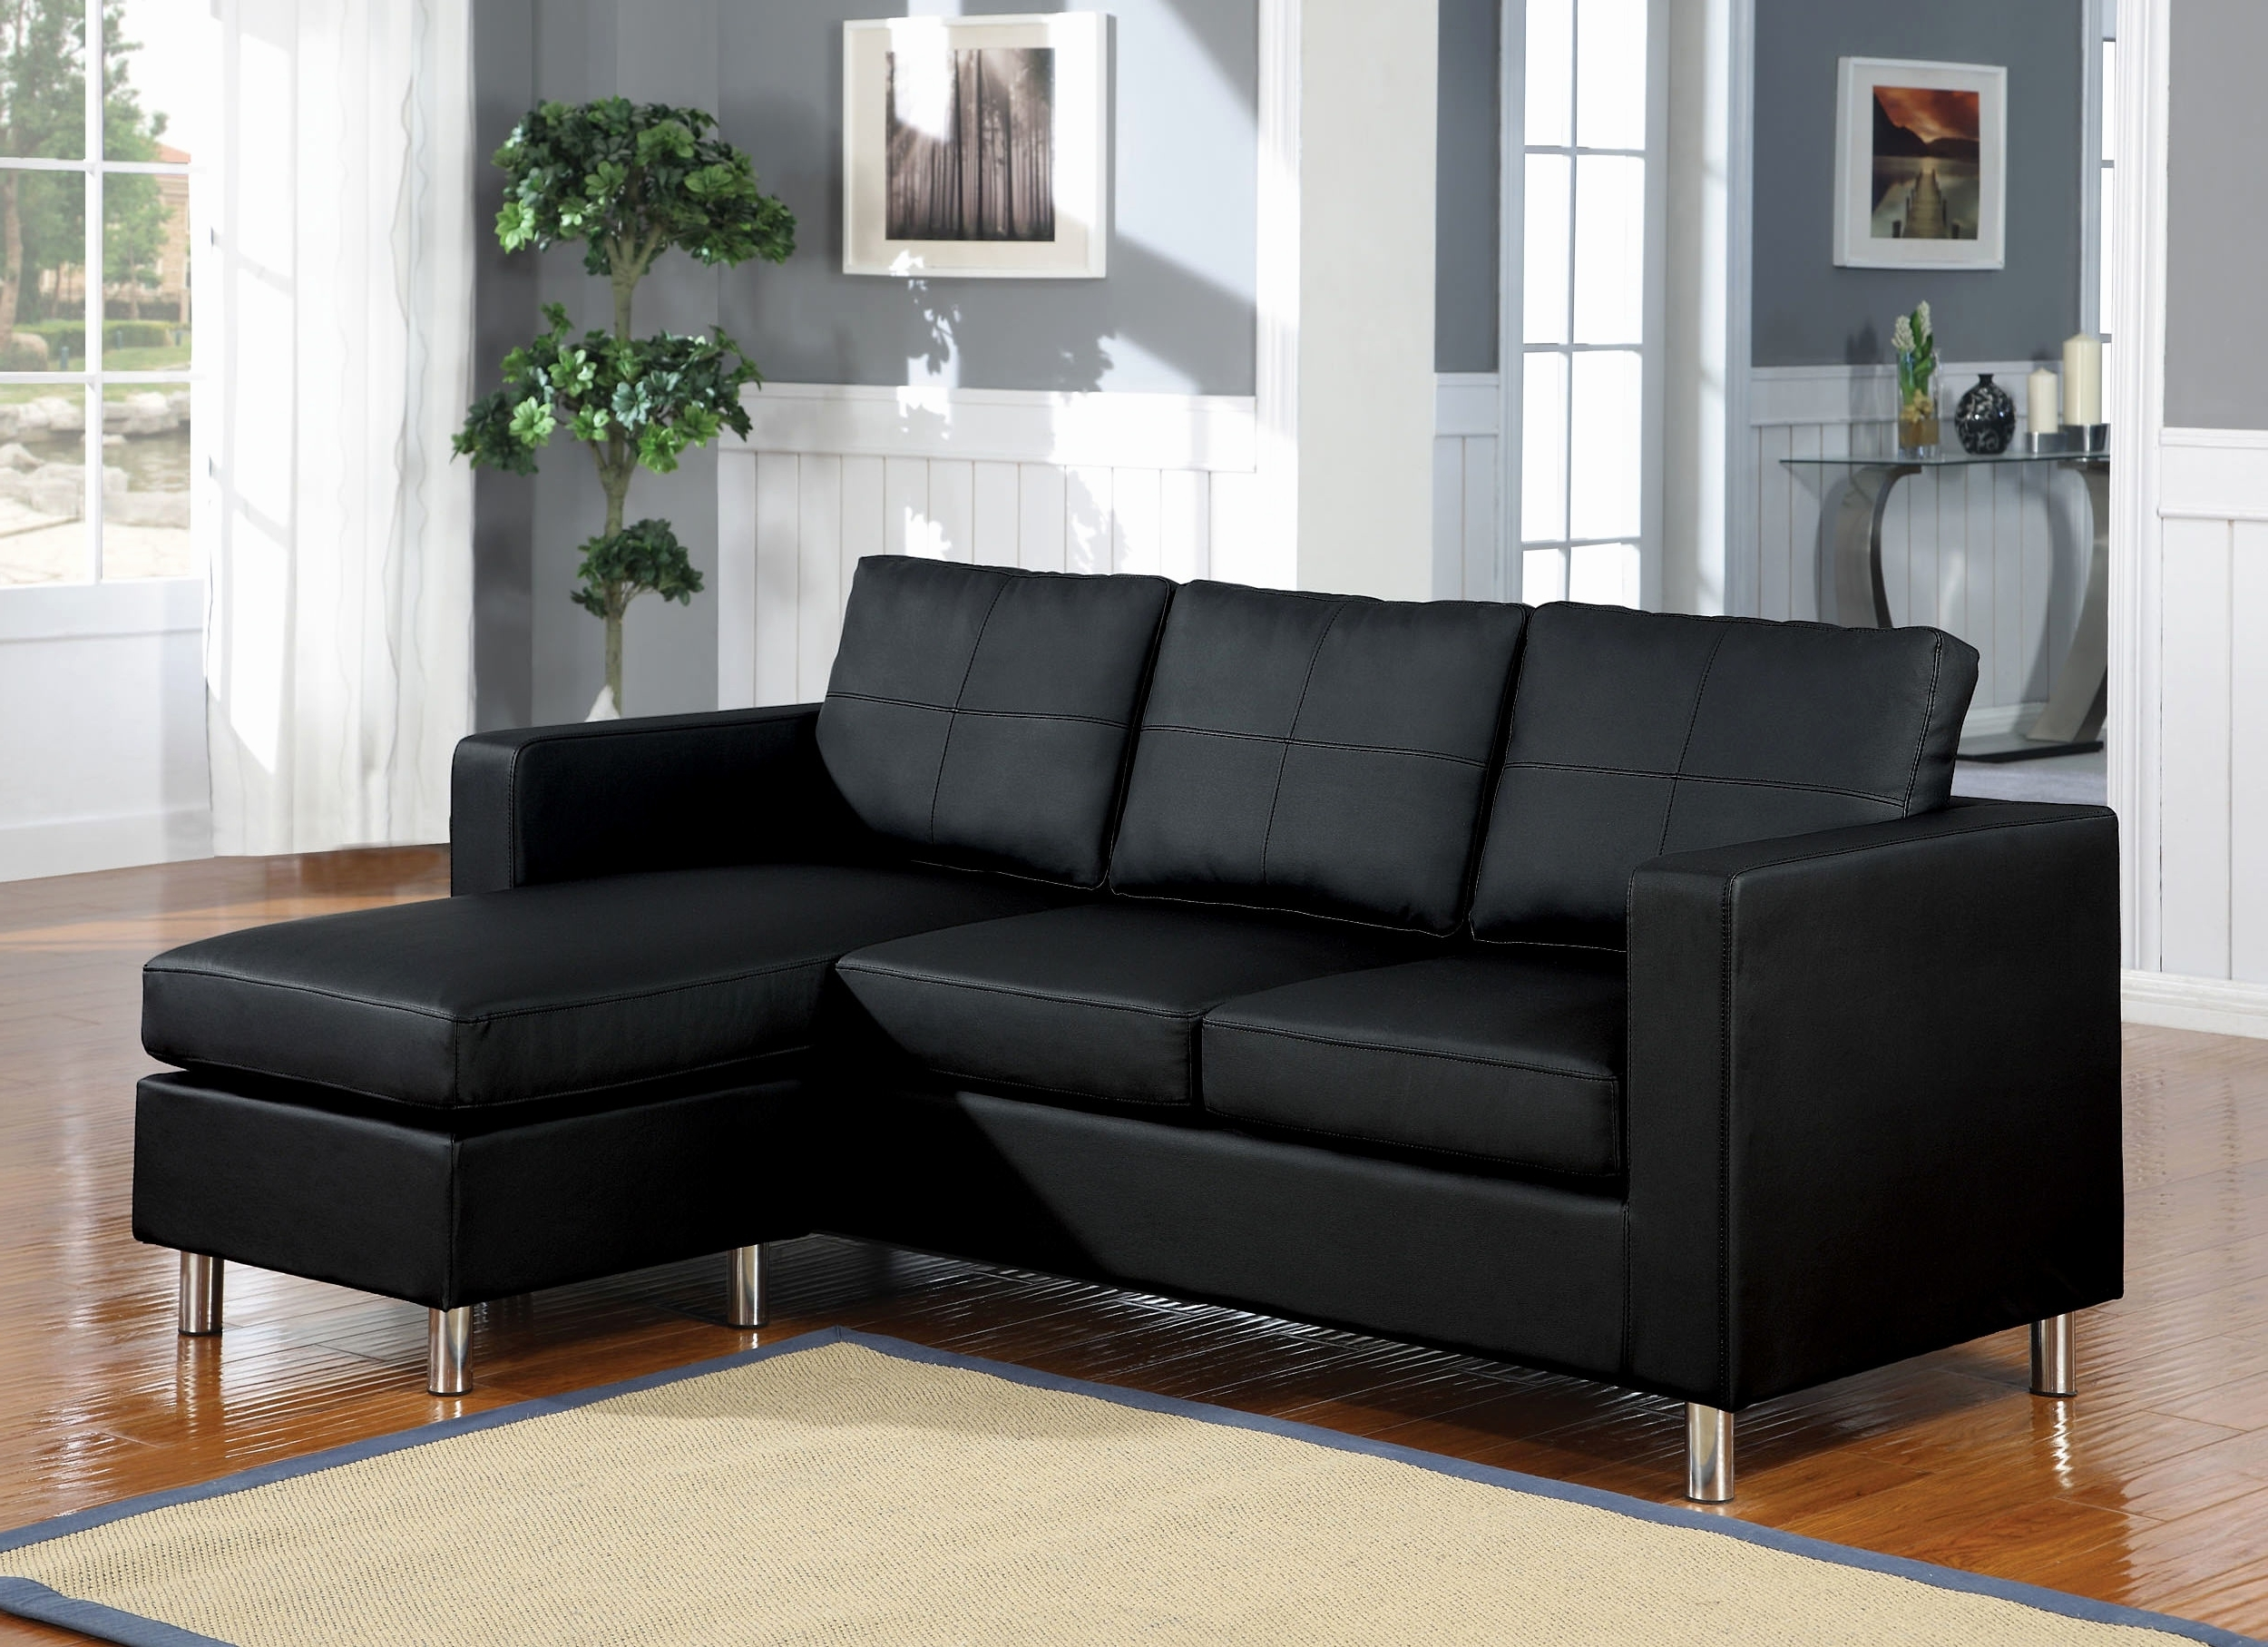 2018 Tiny Sofas With Regard To Small Space Sectional Sofa Elegant Sectional Sofa Design Awesome (View 1 of 20)